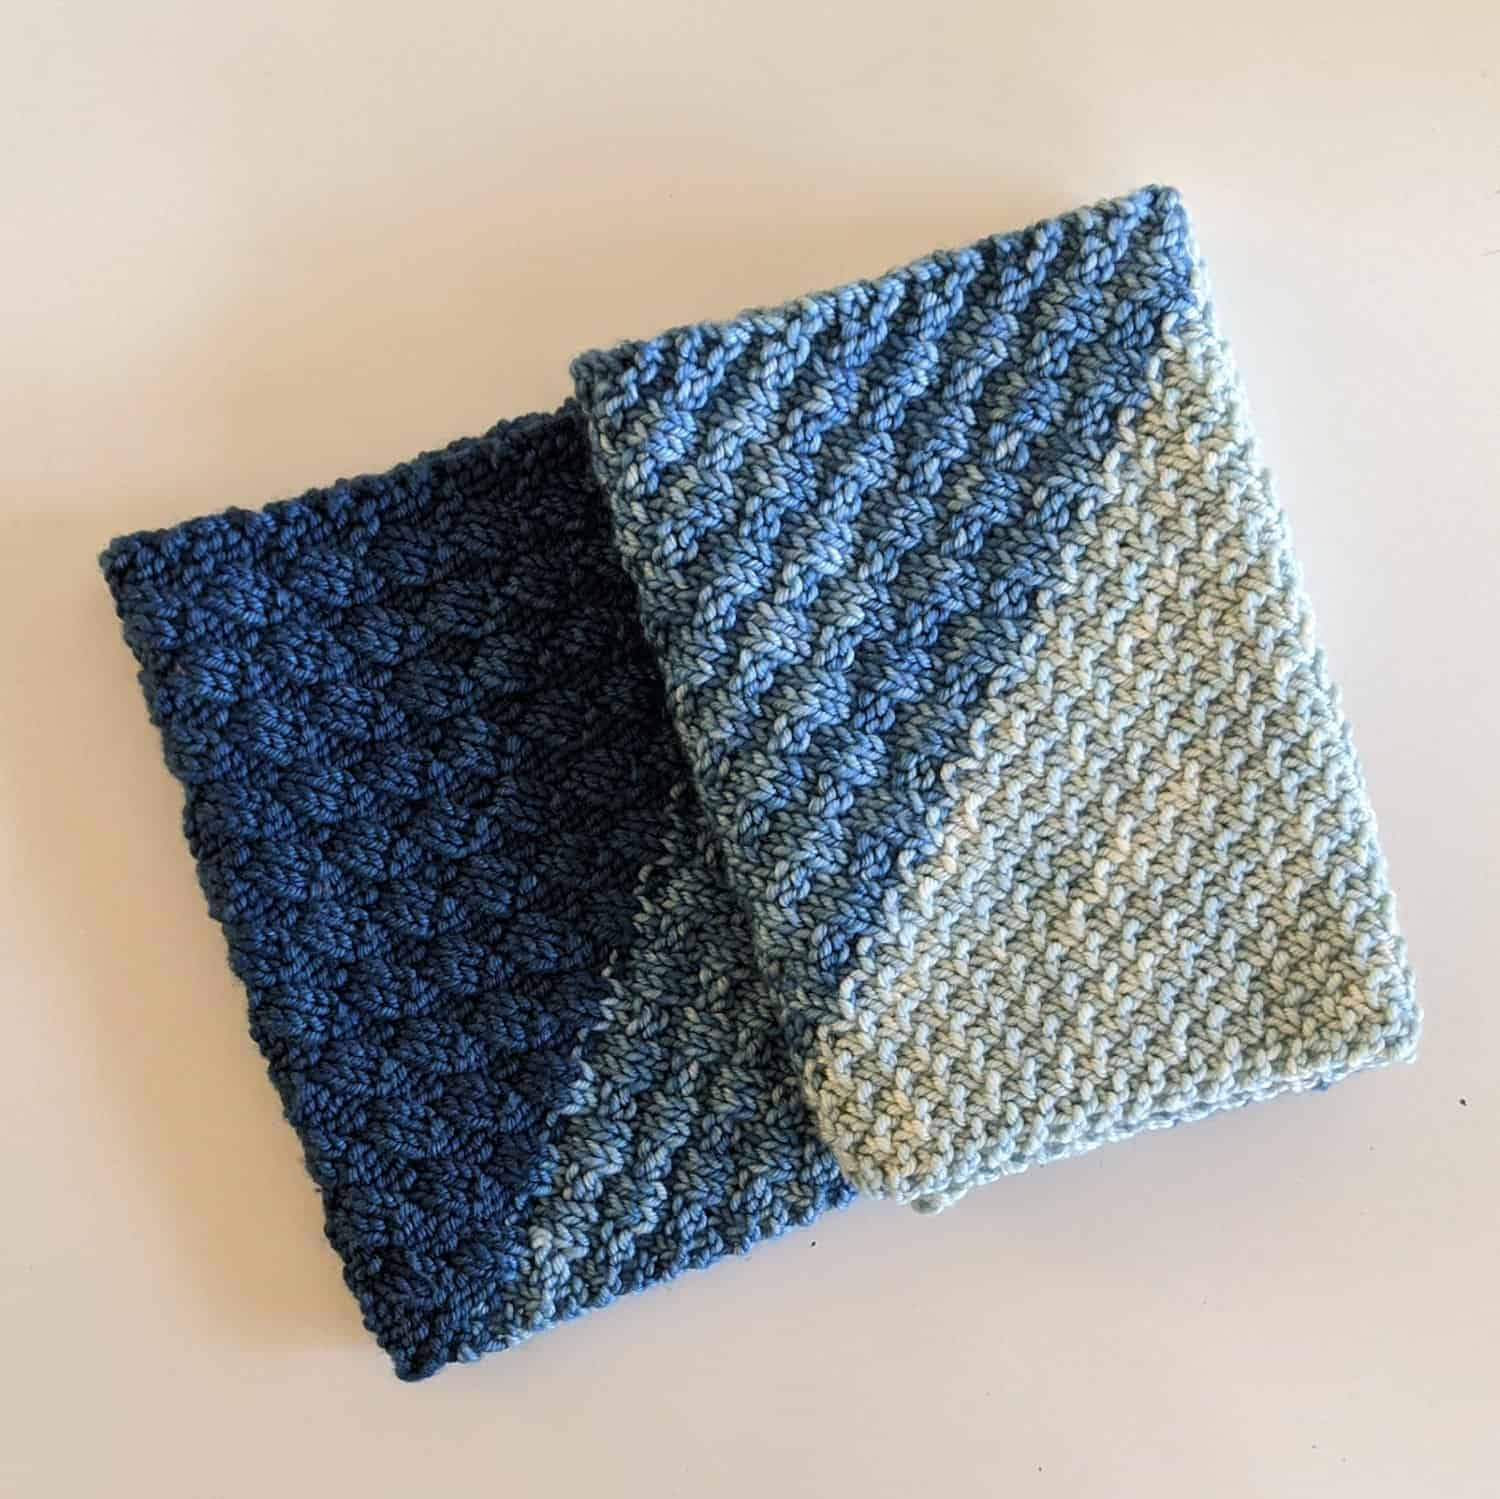 A textured cowl in shades of blue.